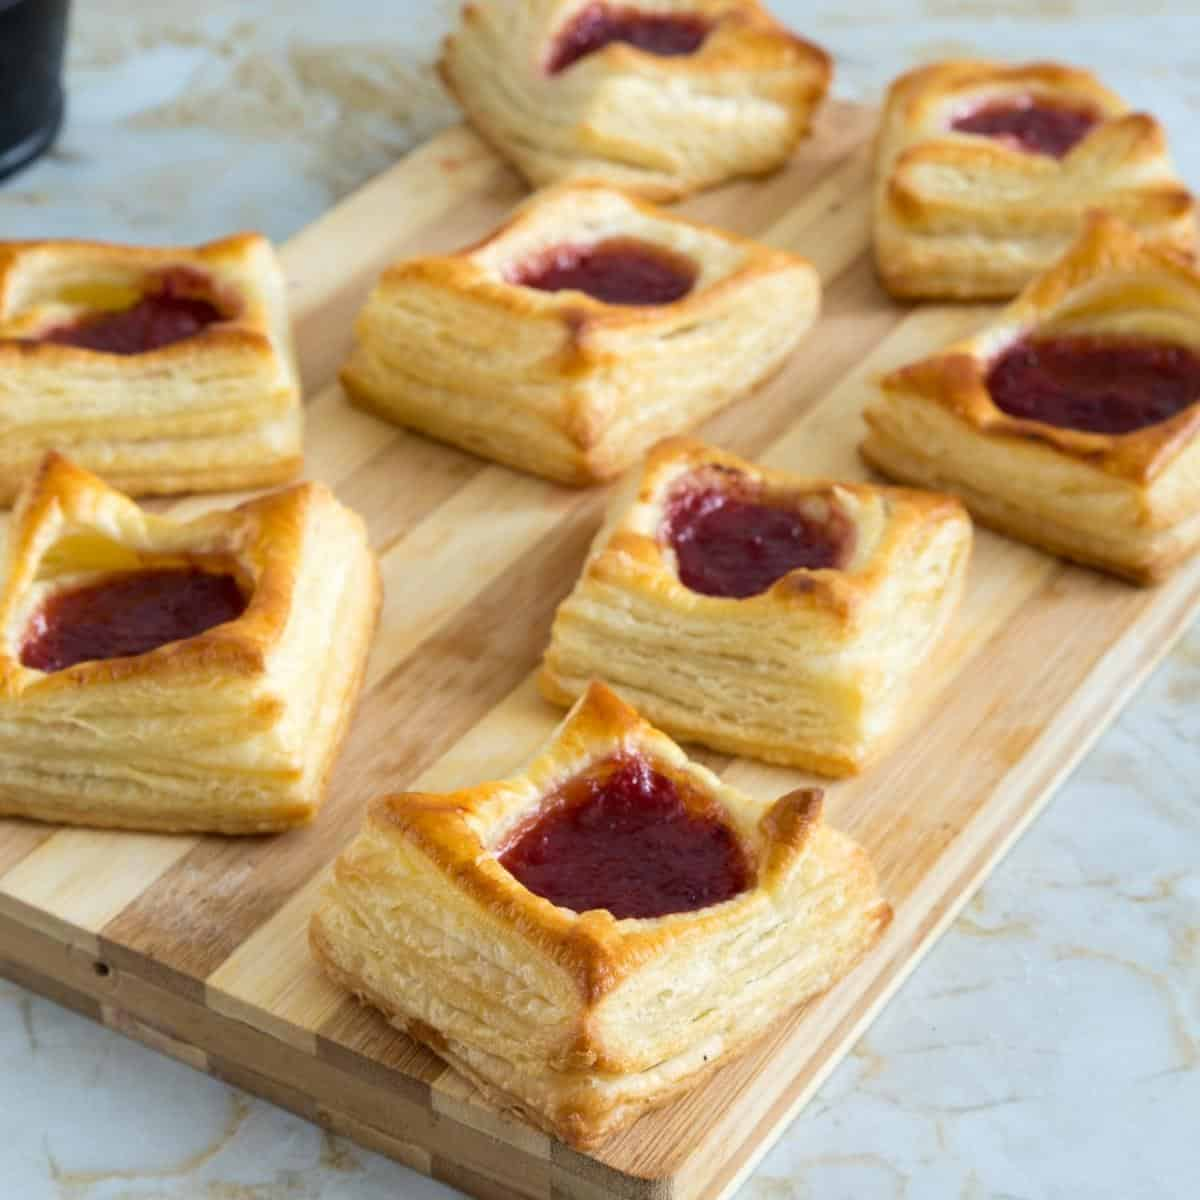 Jam tarts made with puff pastry dough